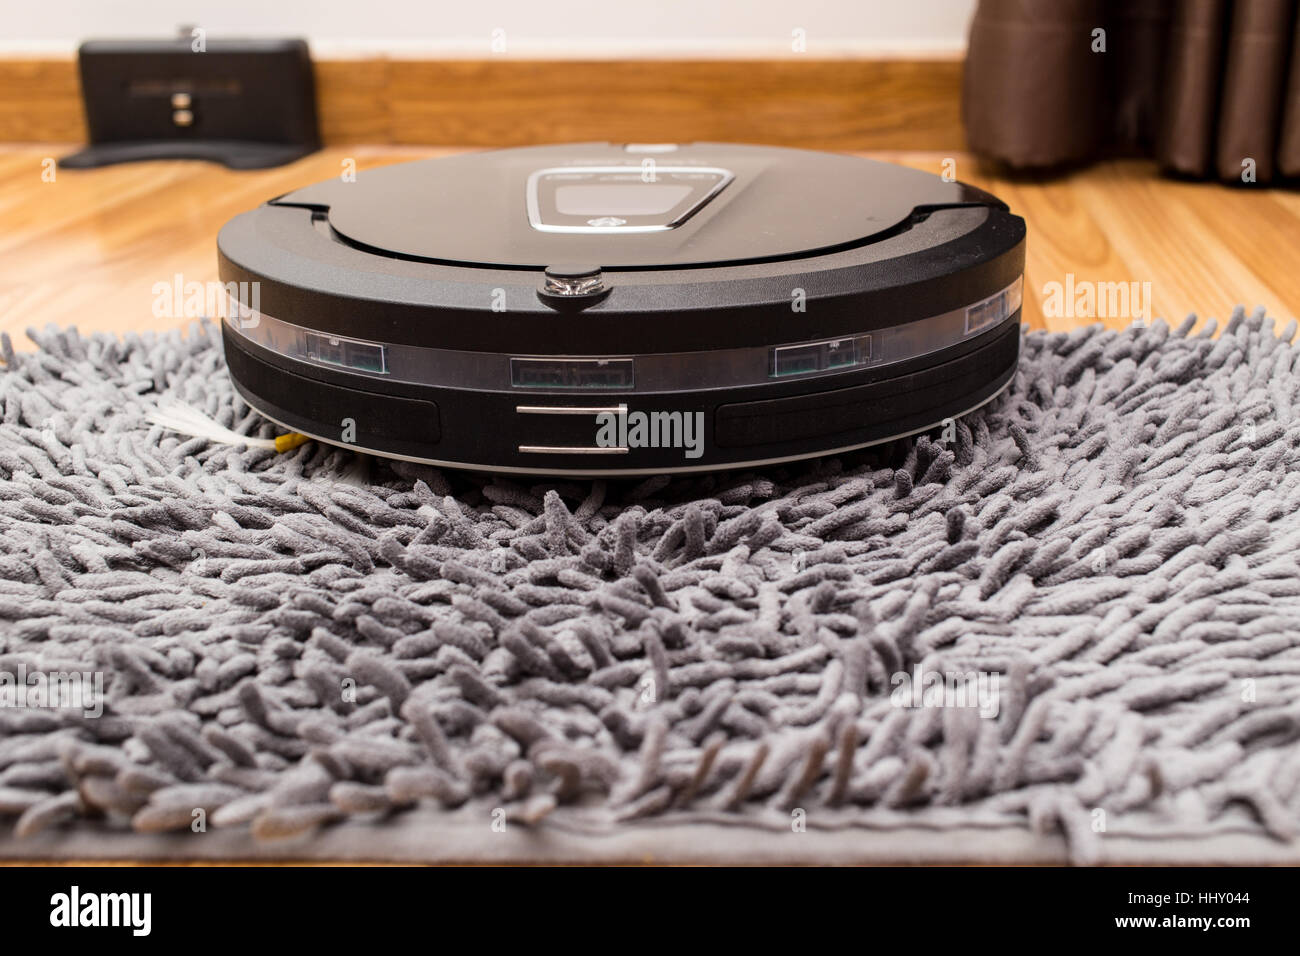 Robotic vacuum cleaner on wood parquet floor, Smart vacuum, new automate technology housework - Cleaning on carpet. - Stock Image